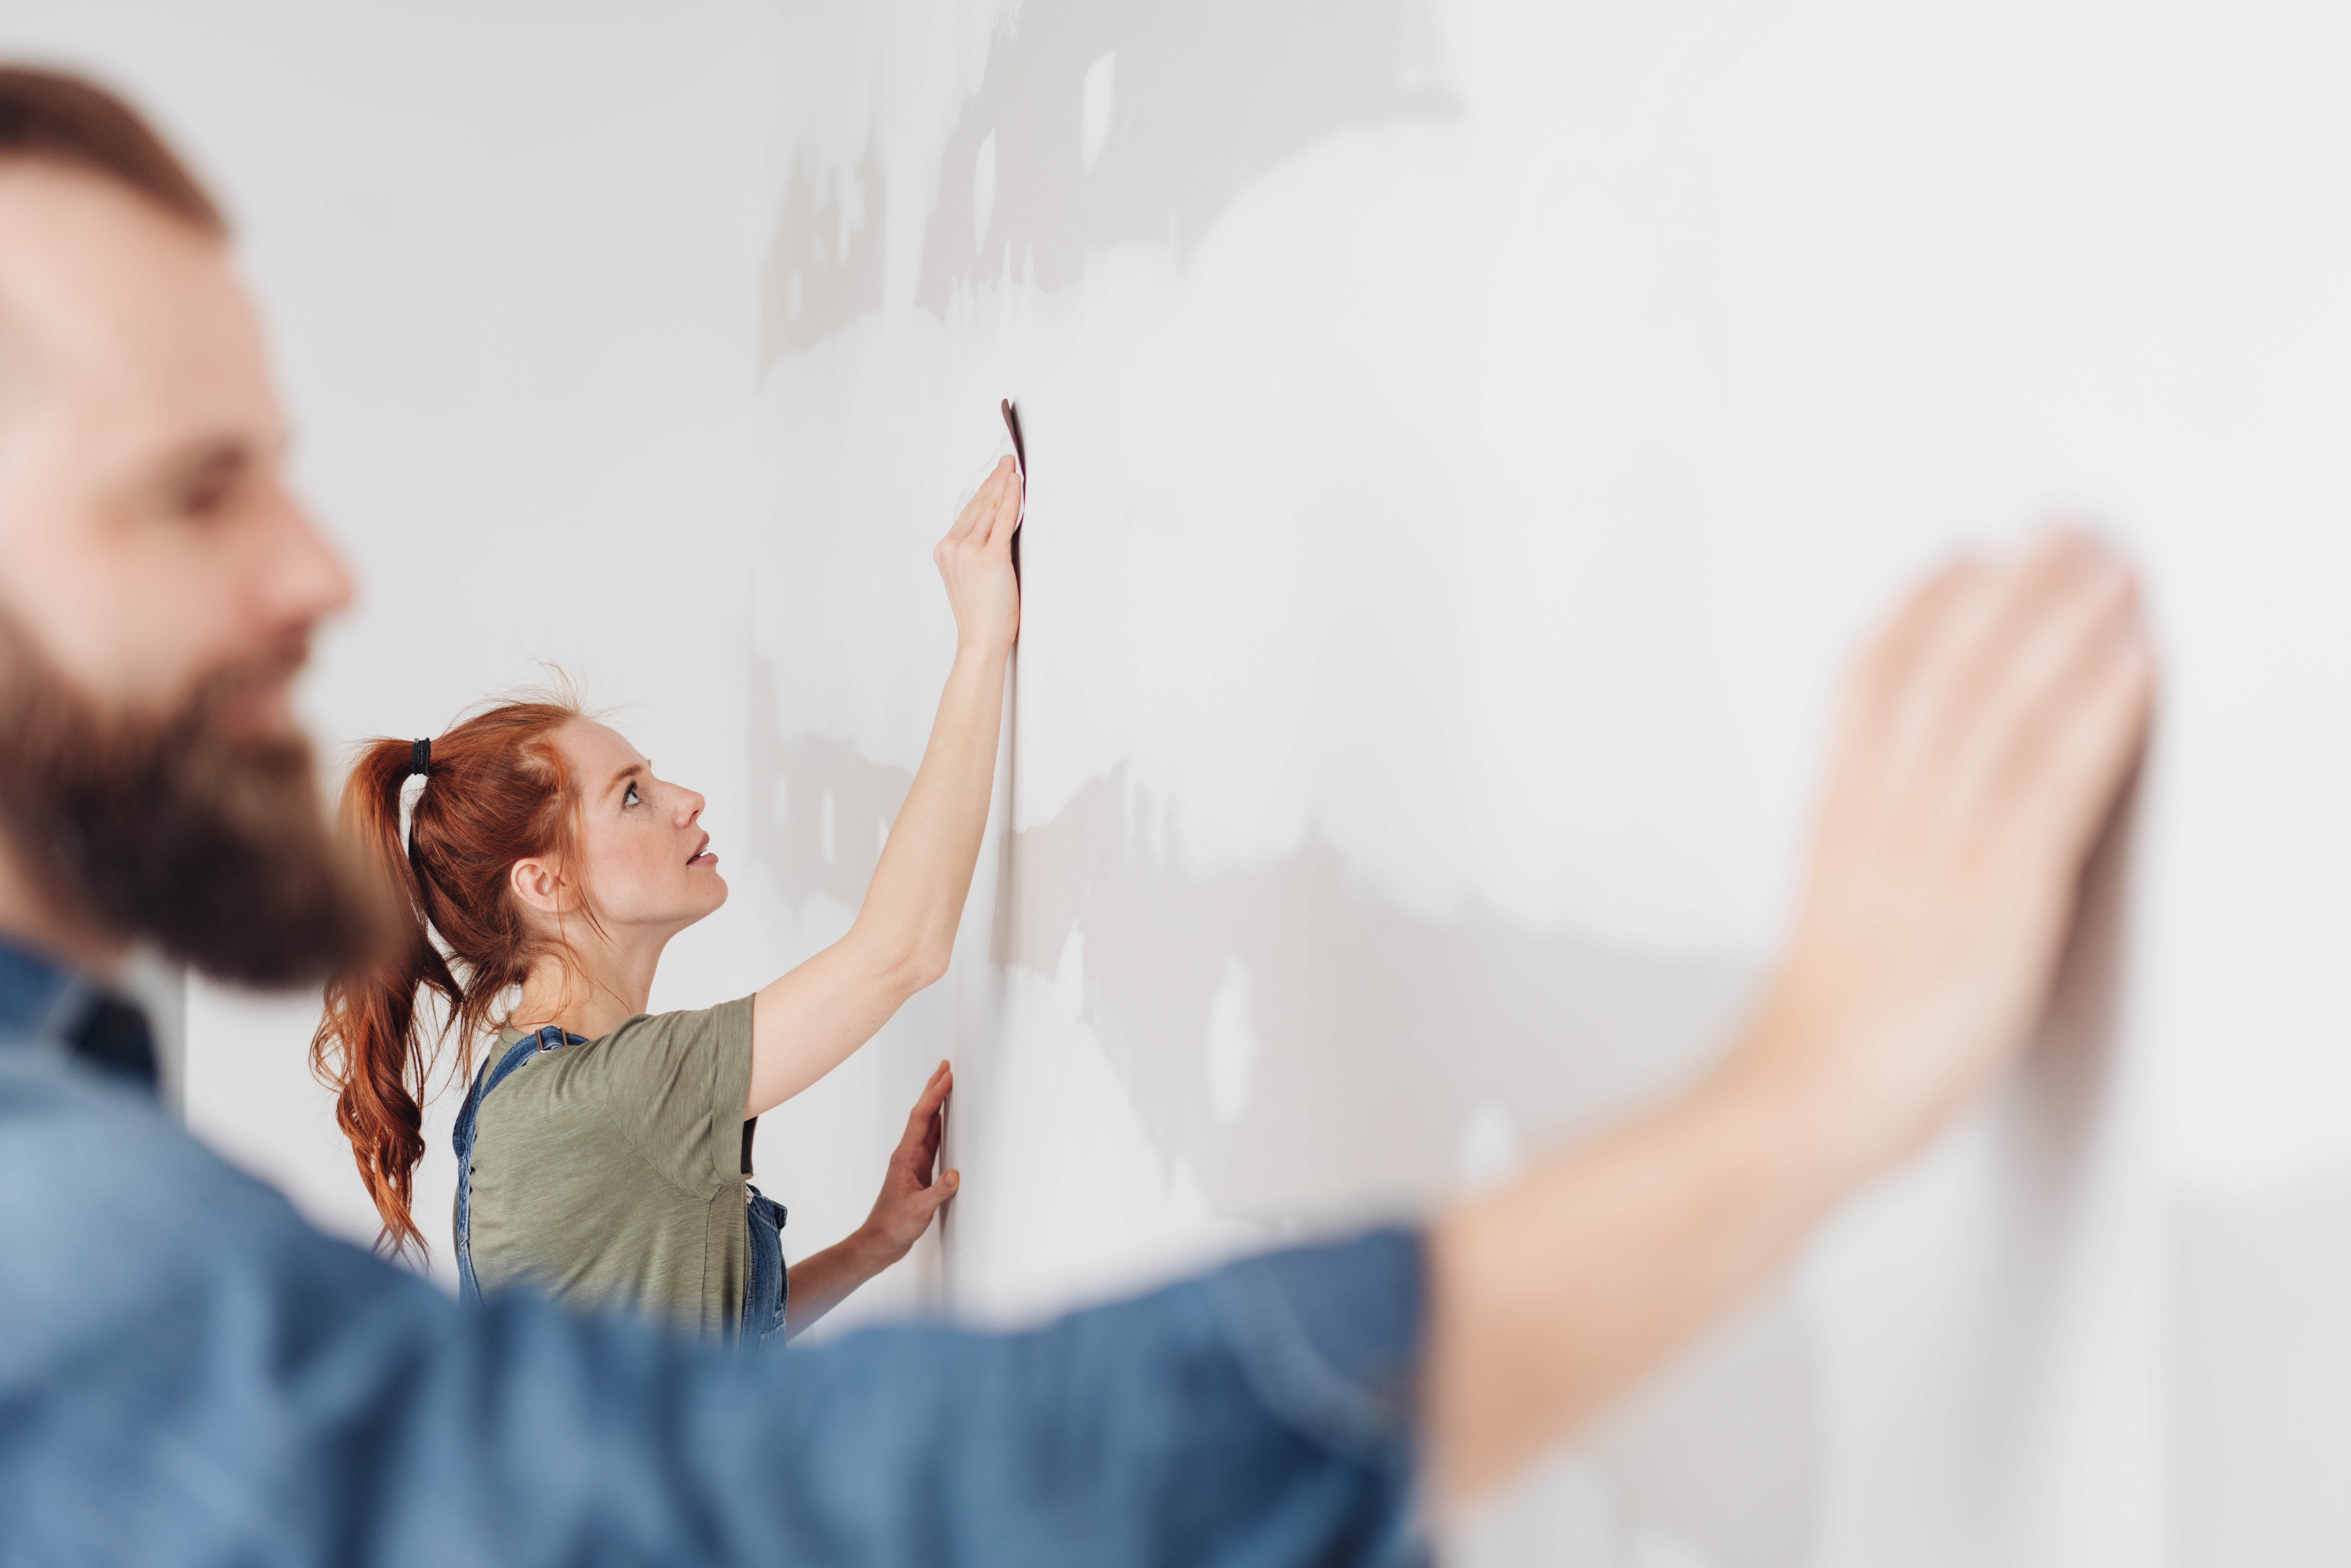 Young woman sanding an unpainted clad wall during DIY home improvements in a view past her husband in the foreground